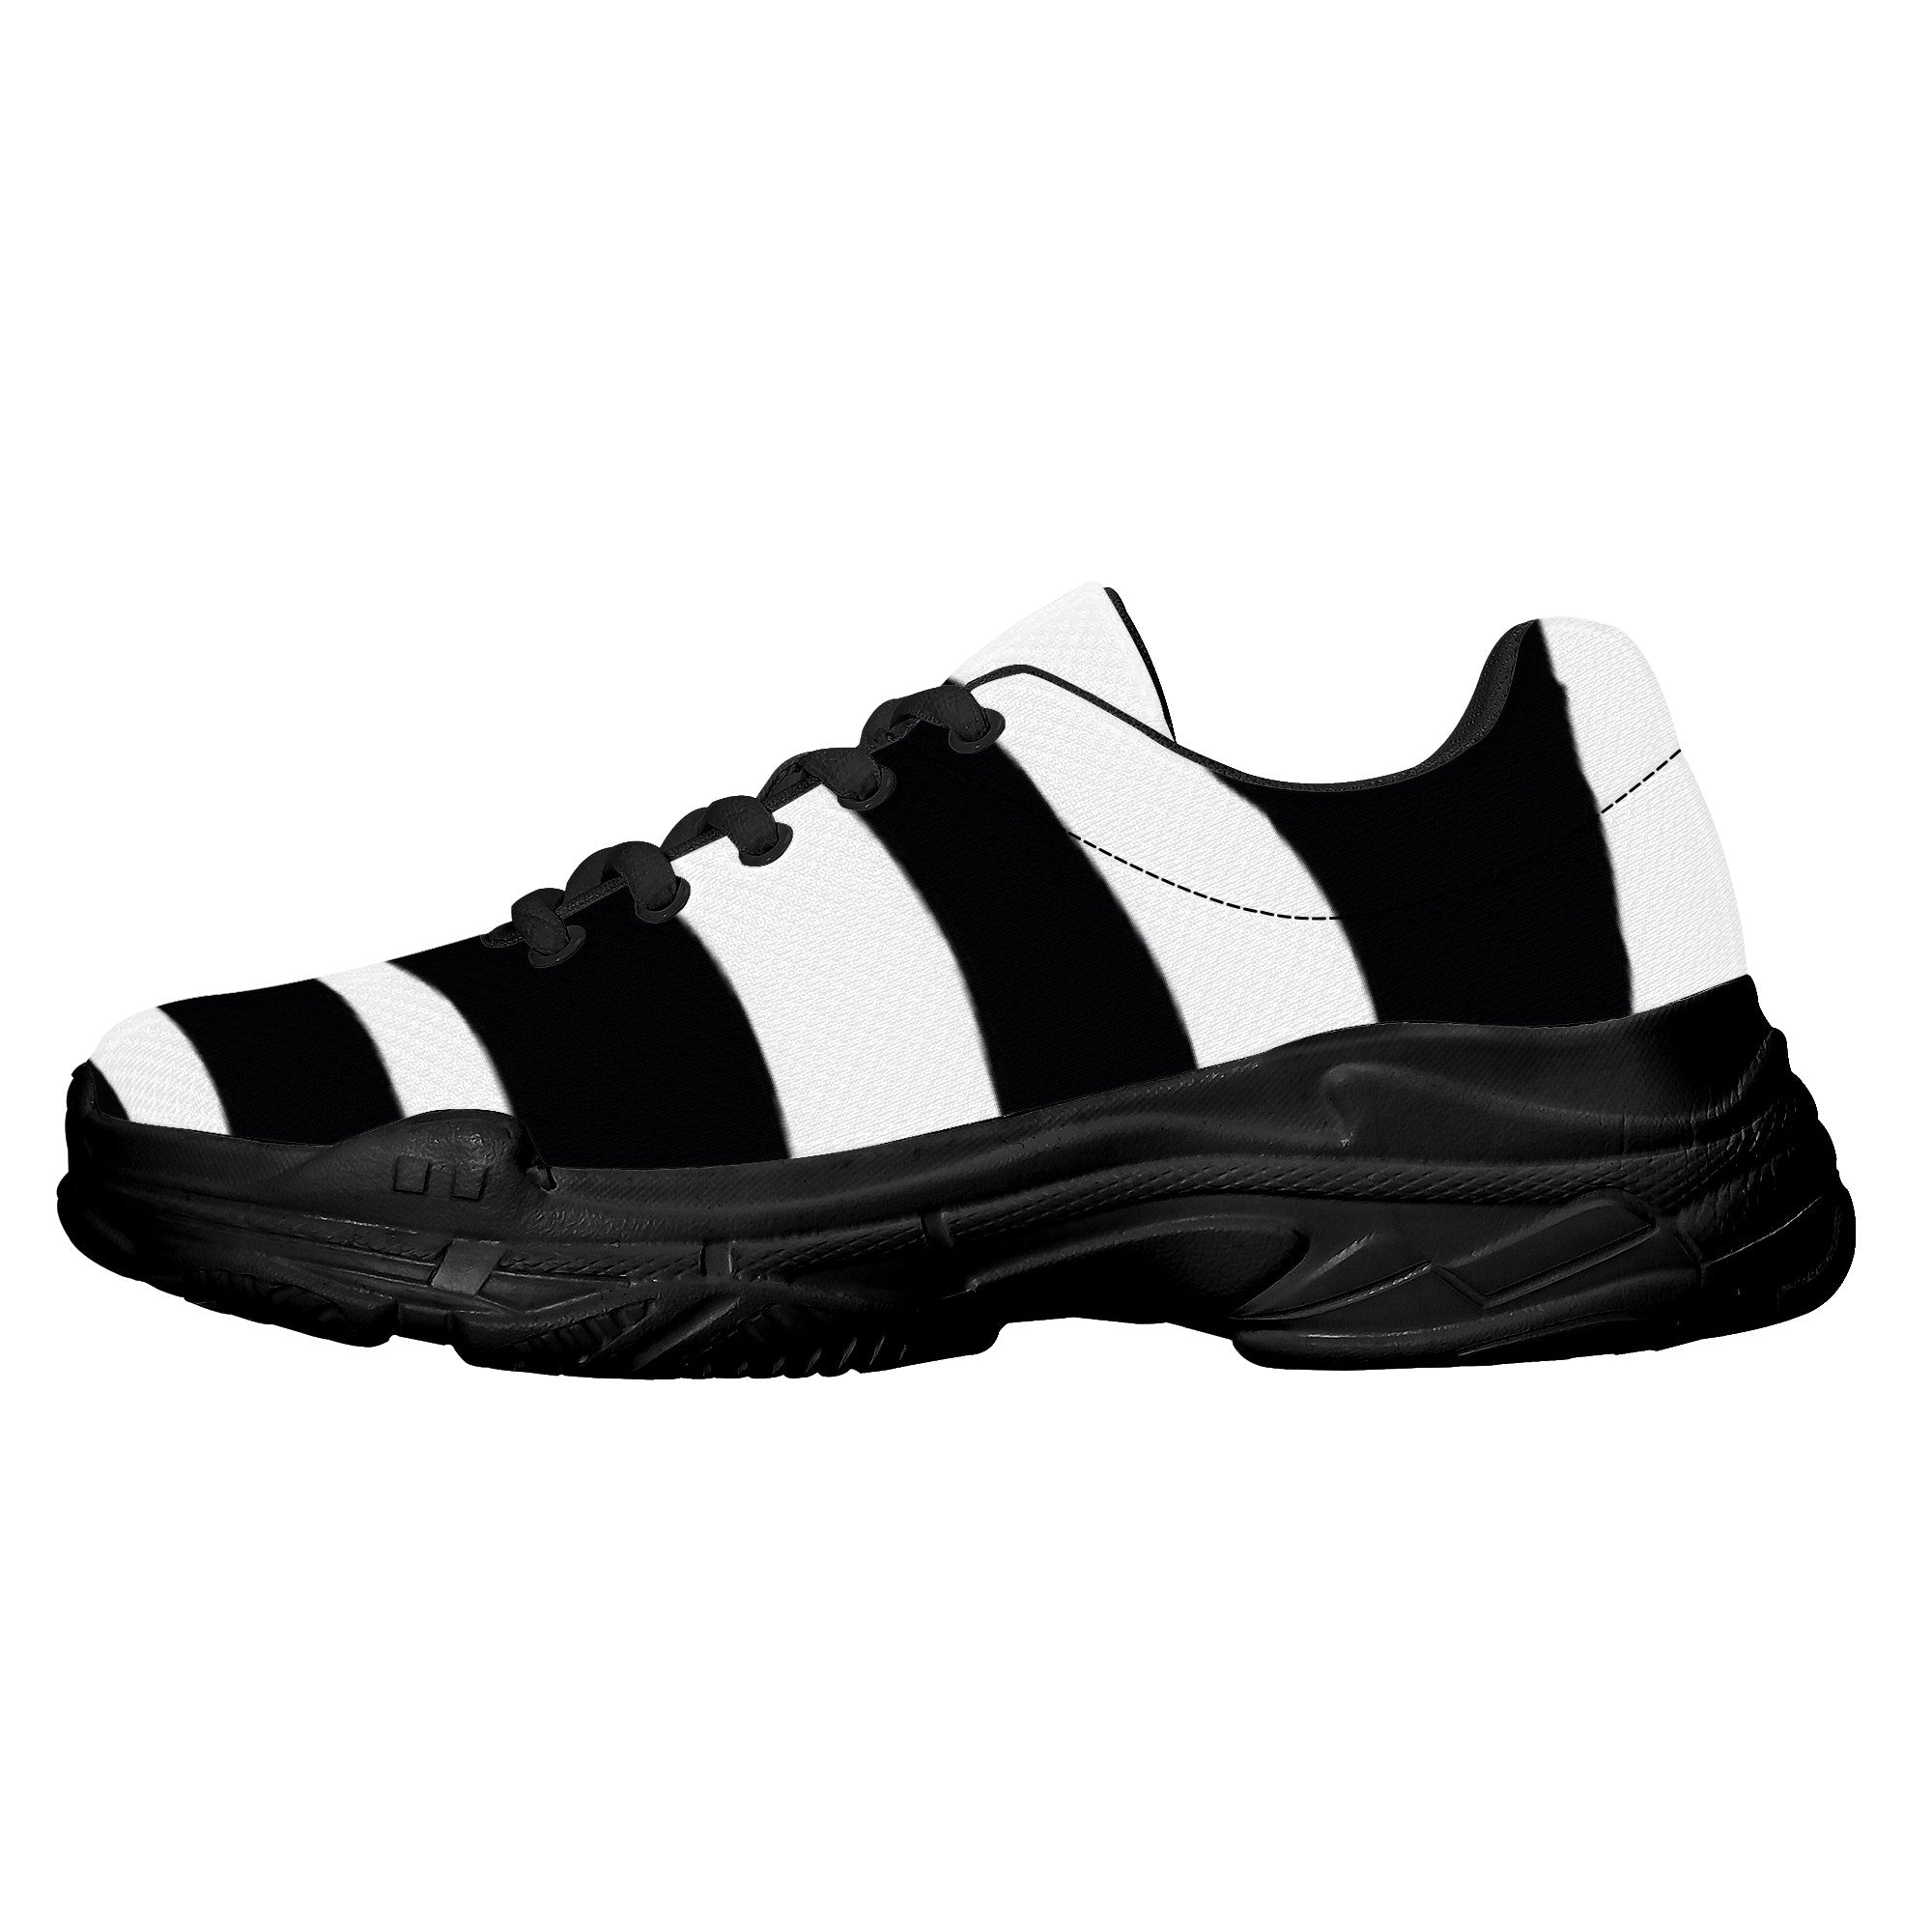 D22 Chunky Sneakers – Black and White HAPPIER FEELINGS